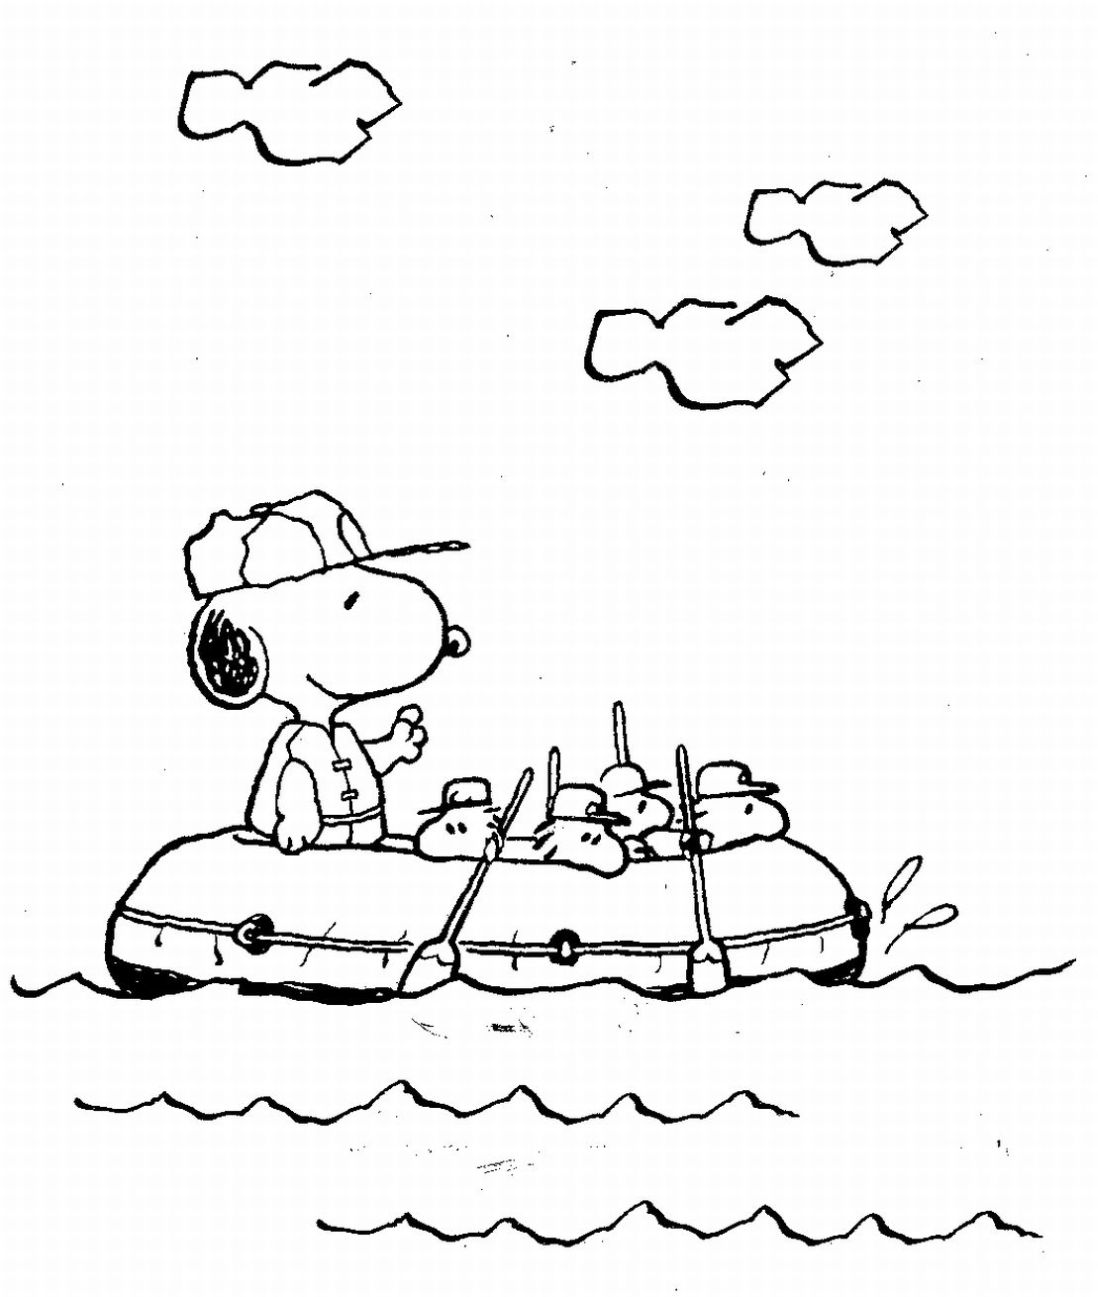 Boat Snoopy Coloring Pages For Kids Free Printable Coloring Pages